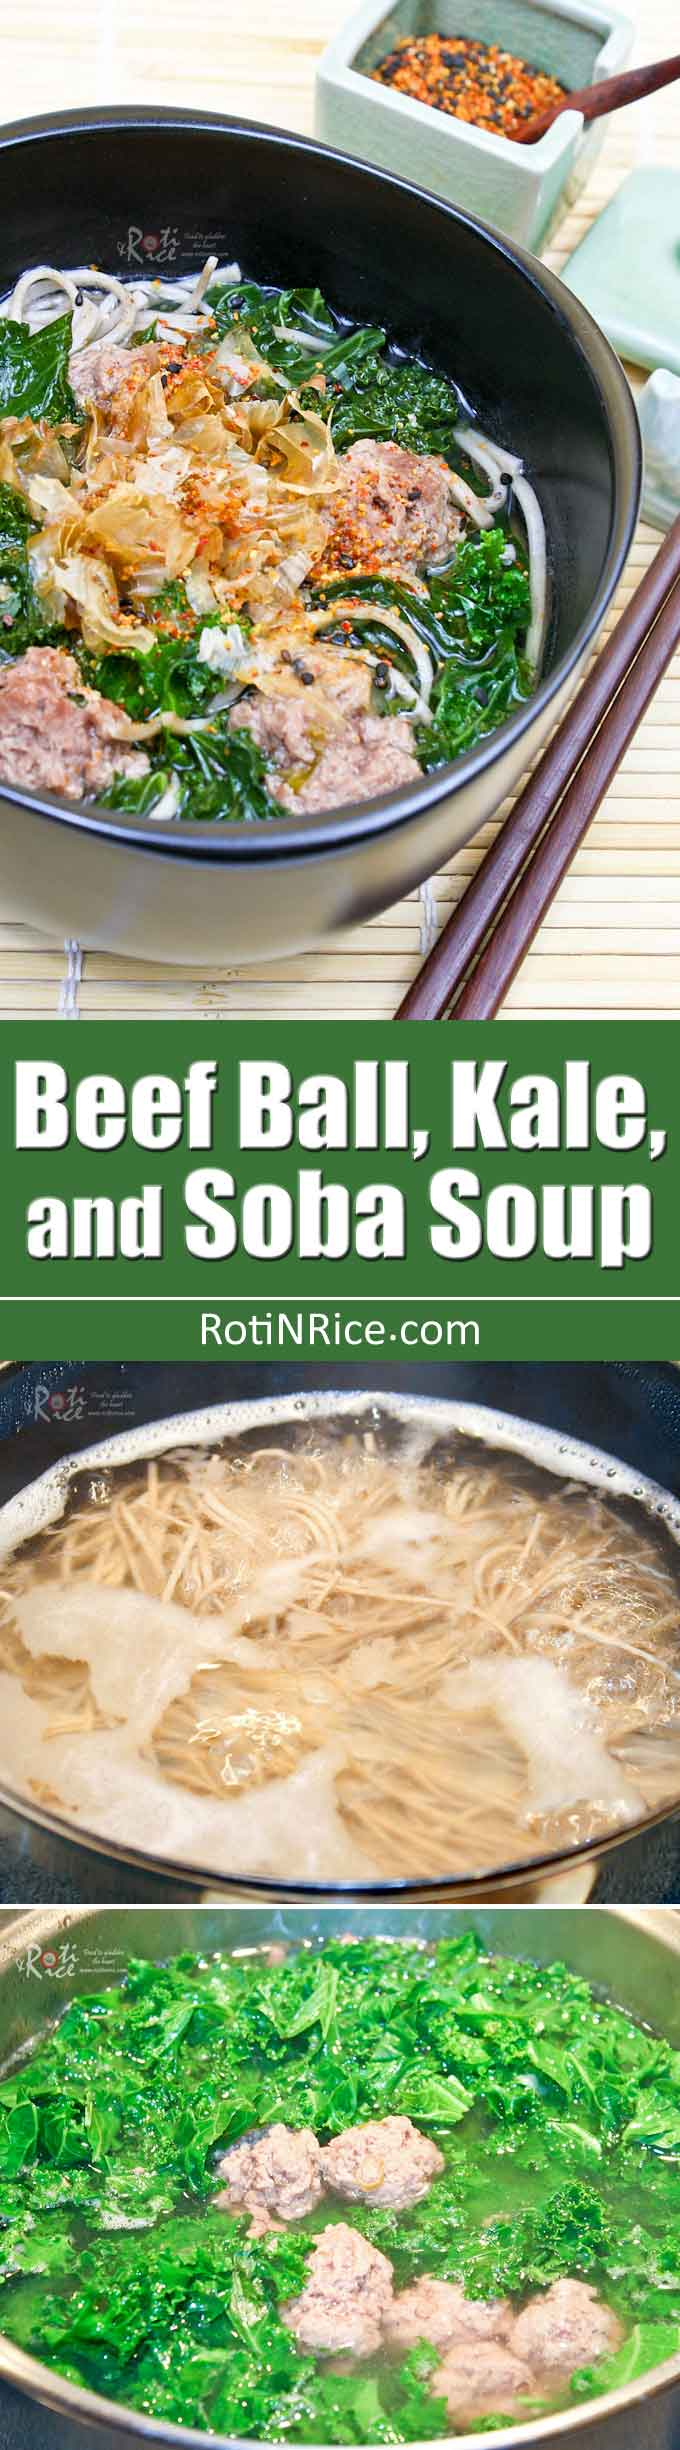 Beef Ball, Kale, and Soba Soup with homemade meatballs and nutritious kale. Makes a simple yet tasty and satisfying meal. | RotiNRice.com